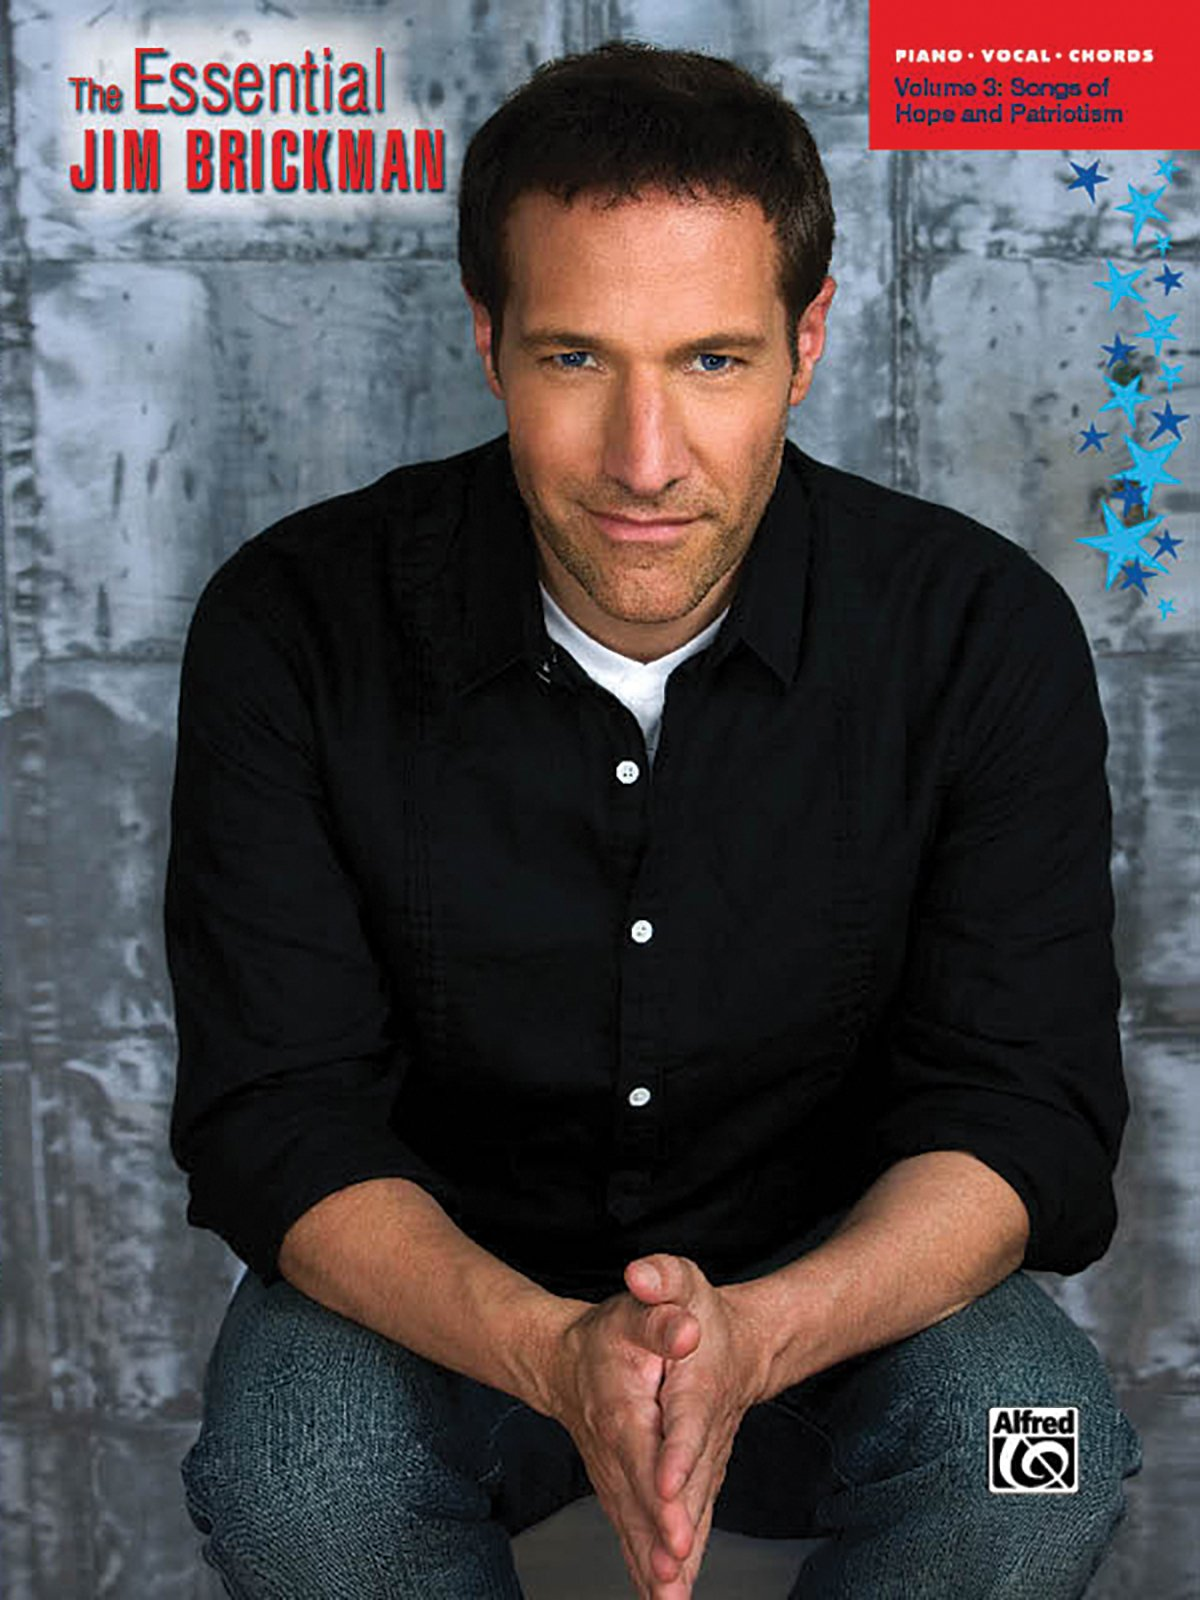 The Essential Jim Brickman, Vol 3: Songs of Hope and Patriotism (Piano/Vocal/Chords)